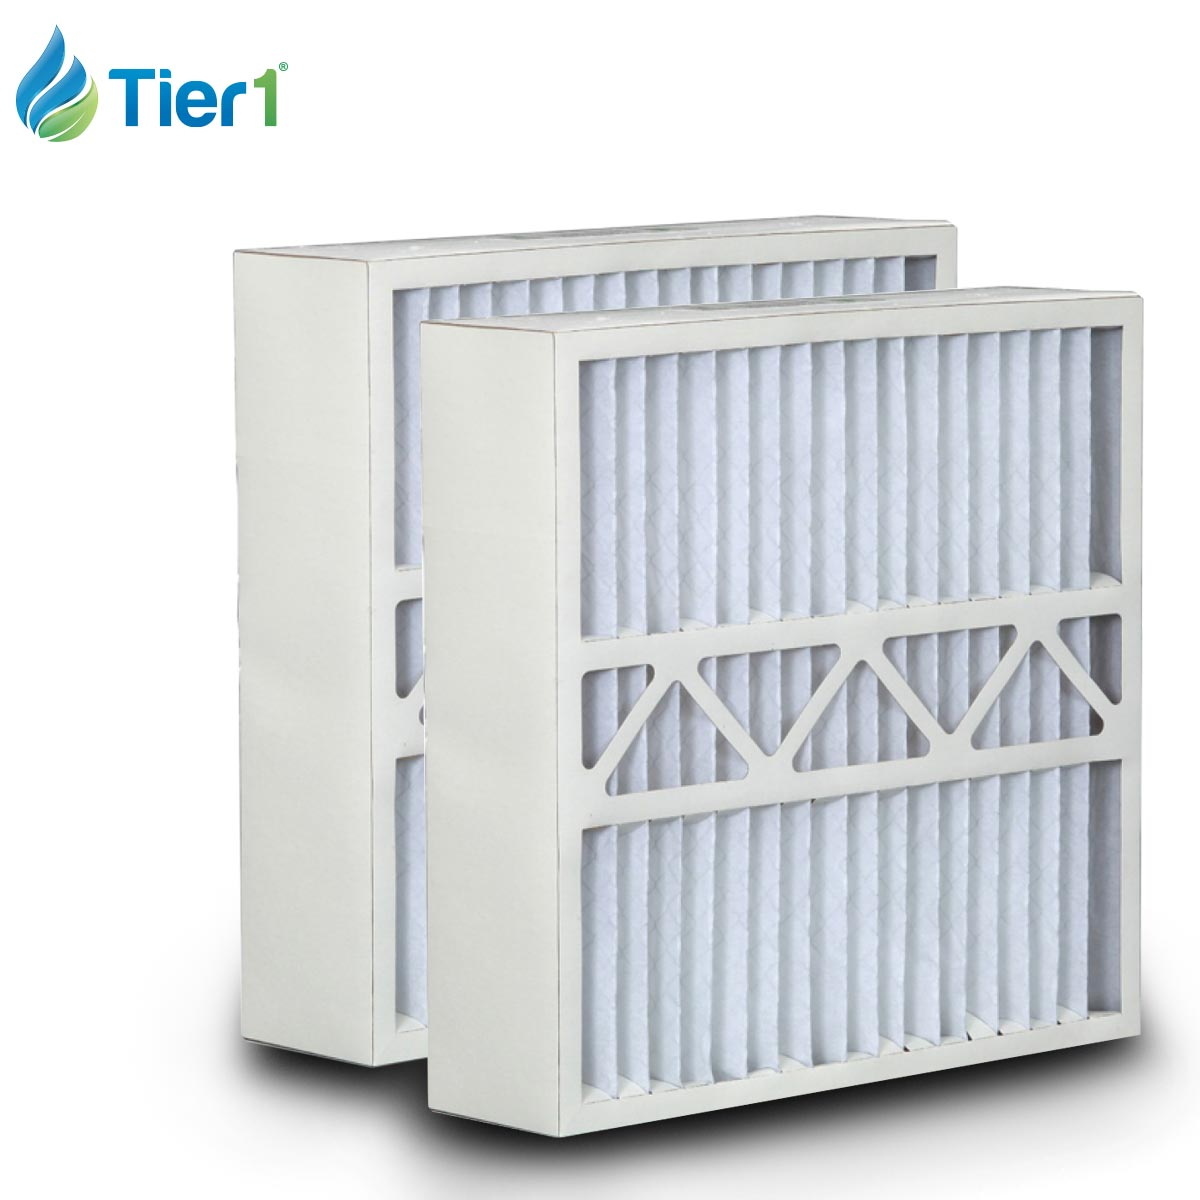 Tier1 Replacement for Carrier 19x20x4-1/4 Merv 8 AC Furnace Air Filter 2 Pack